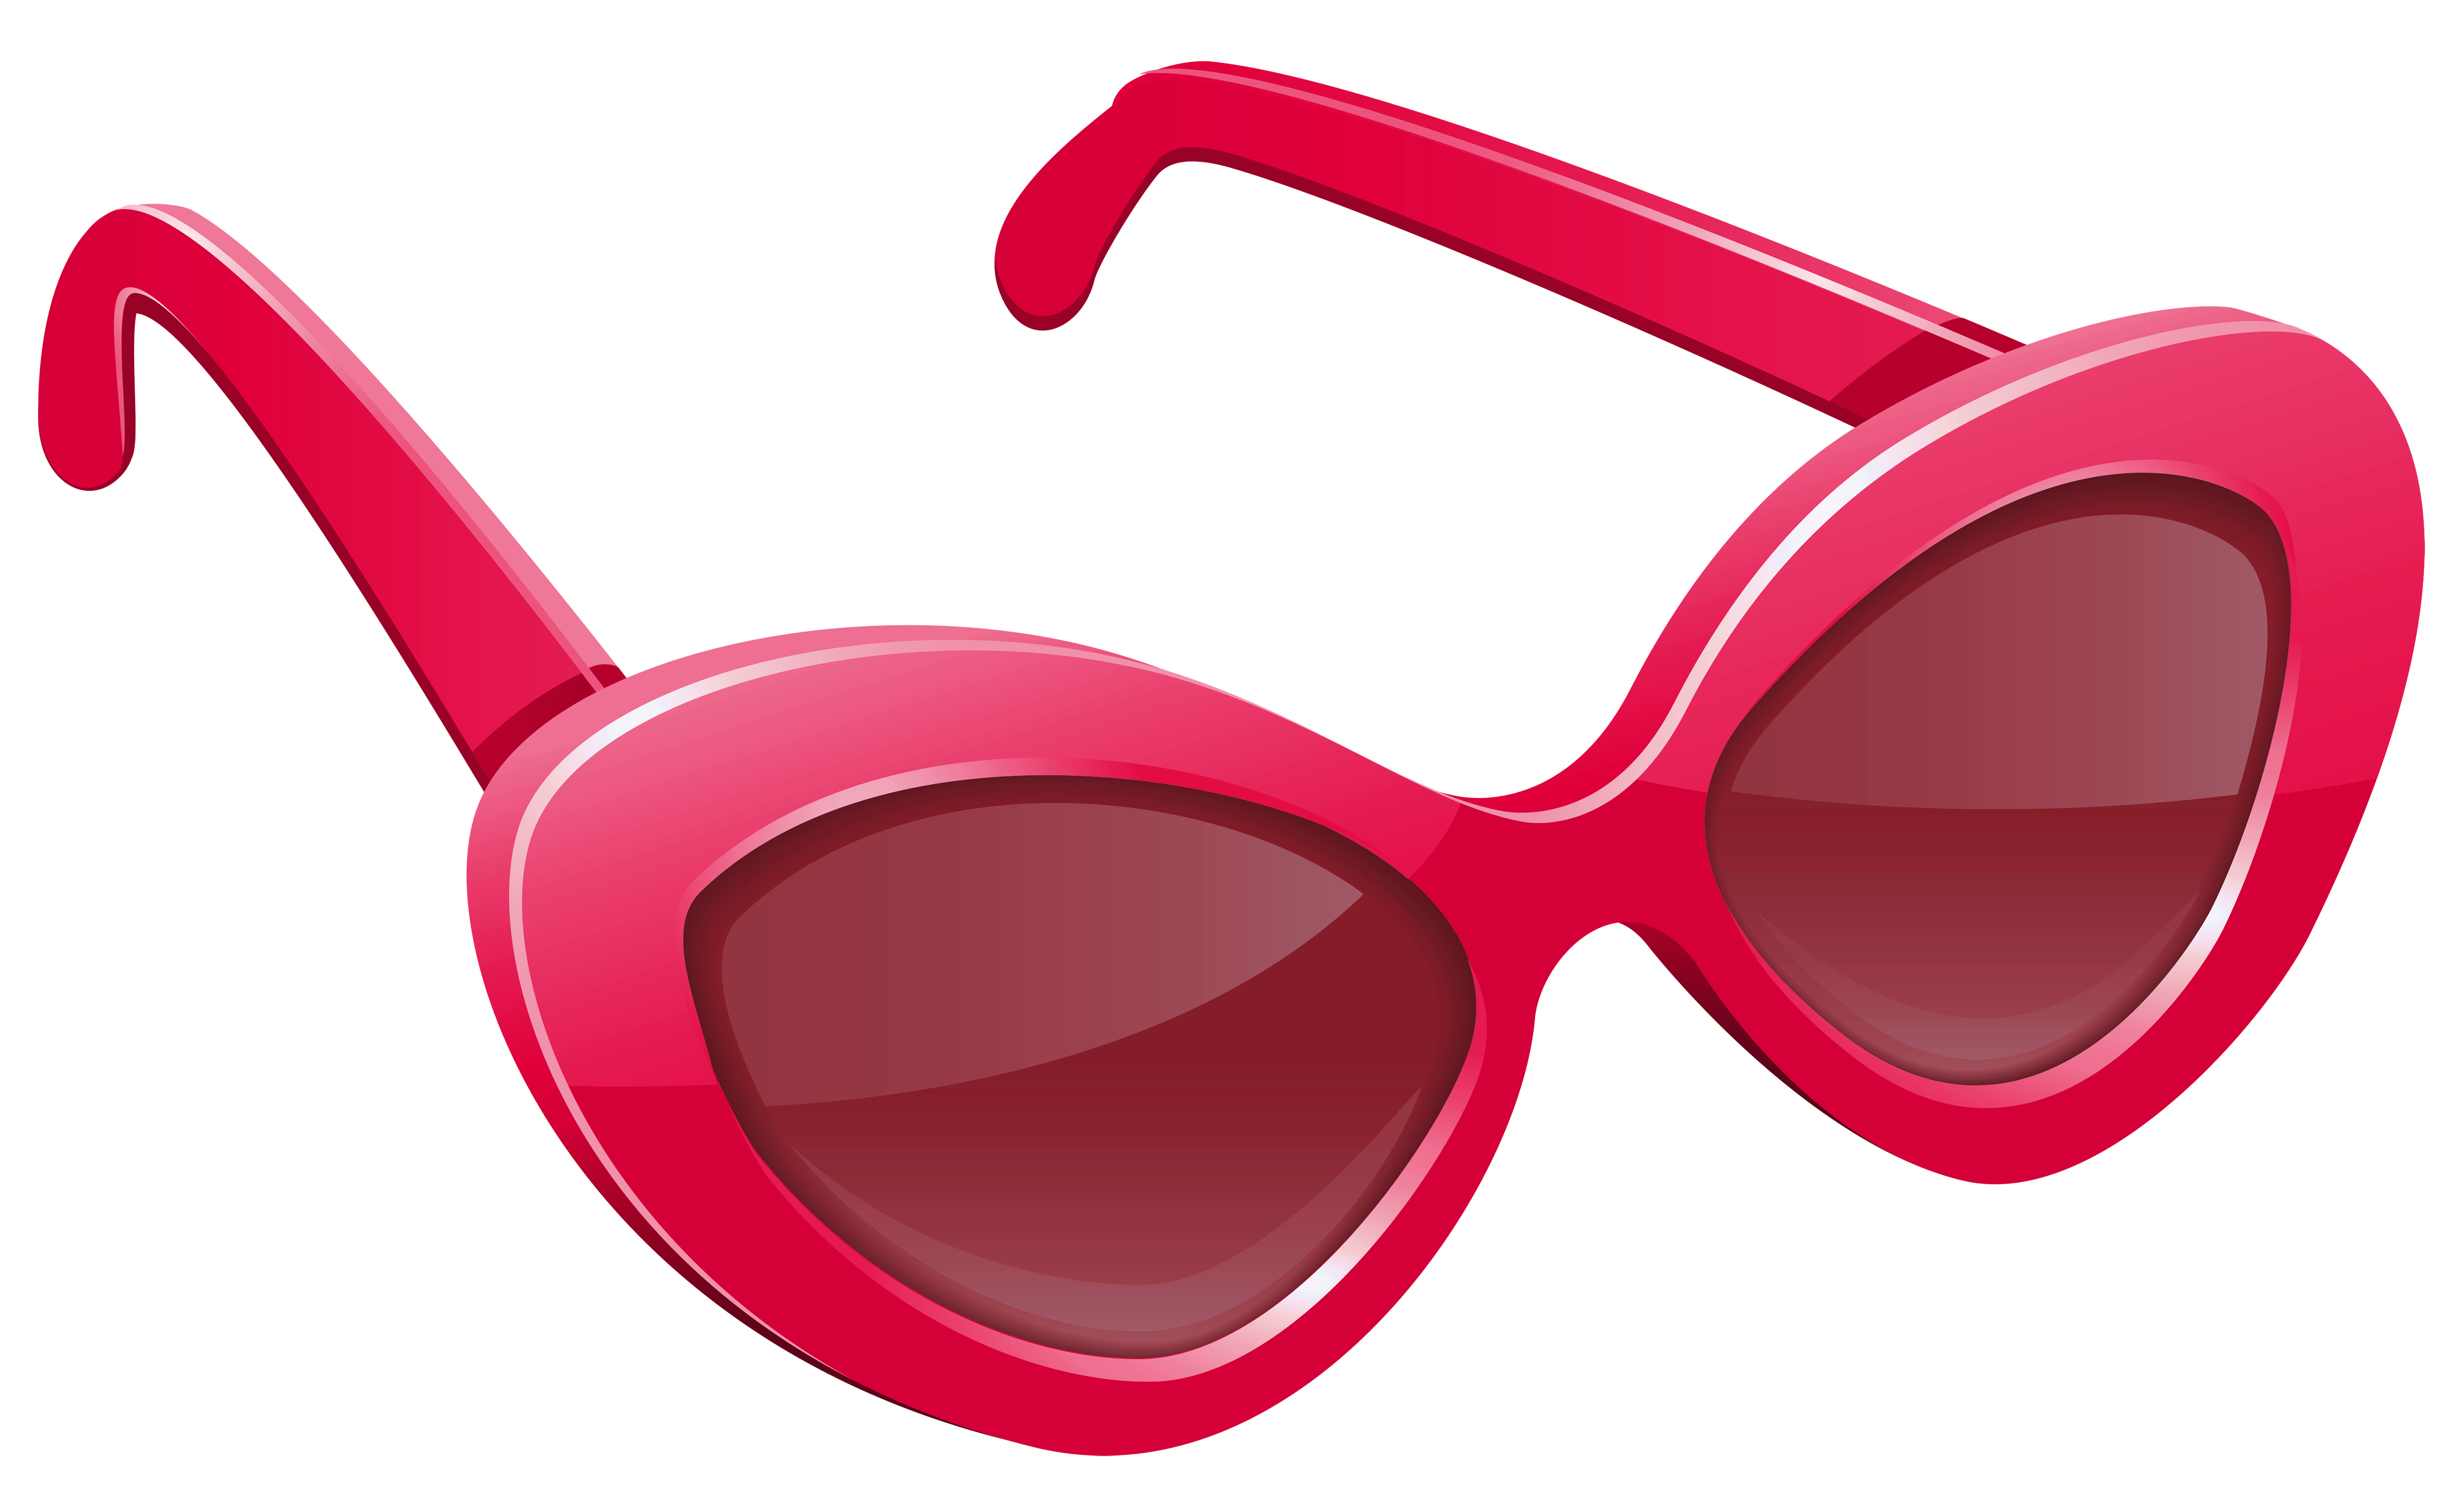 Pink Sunglasses PNG Image.